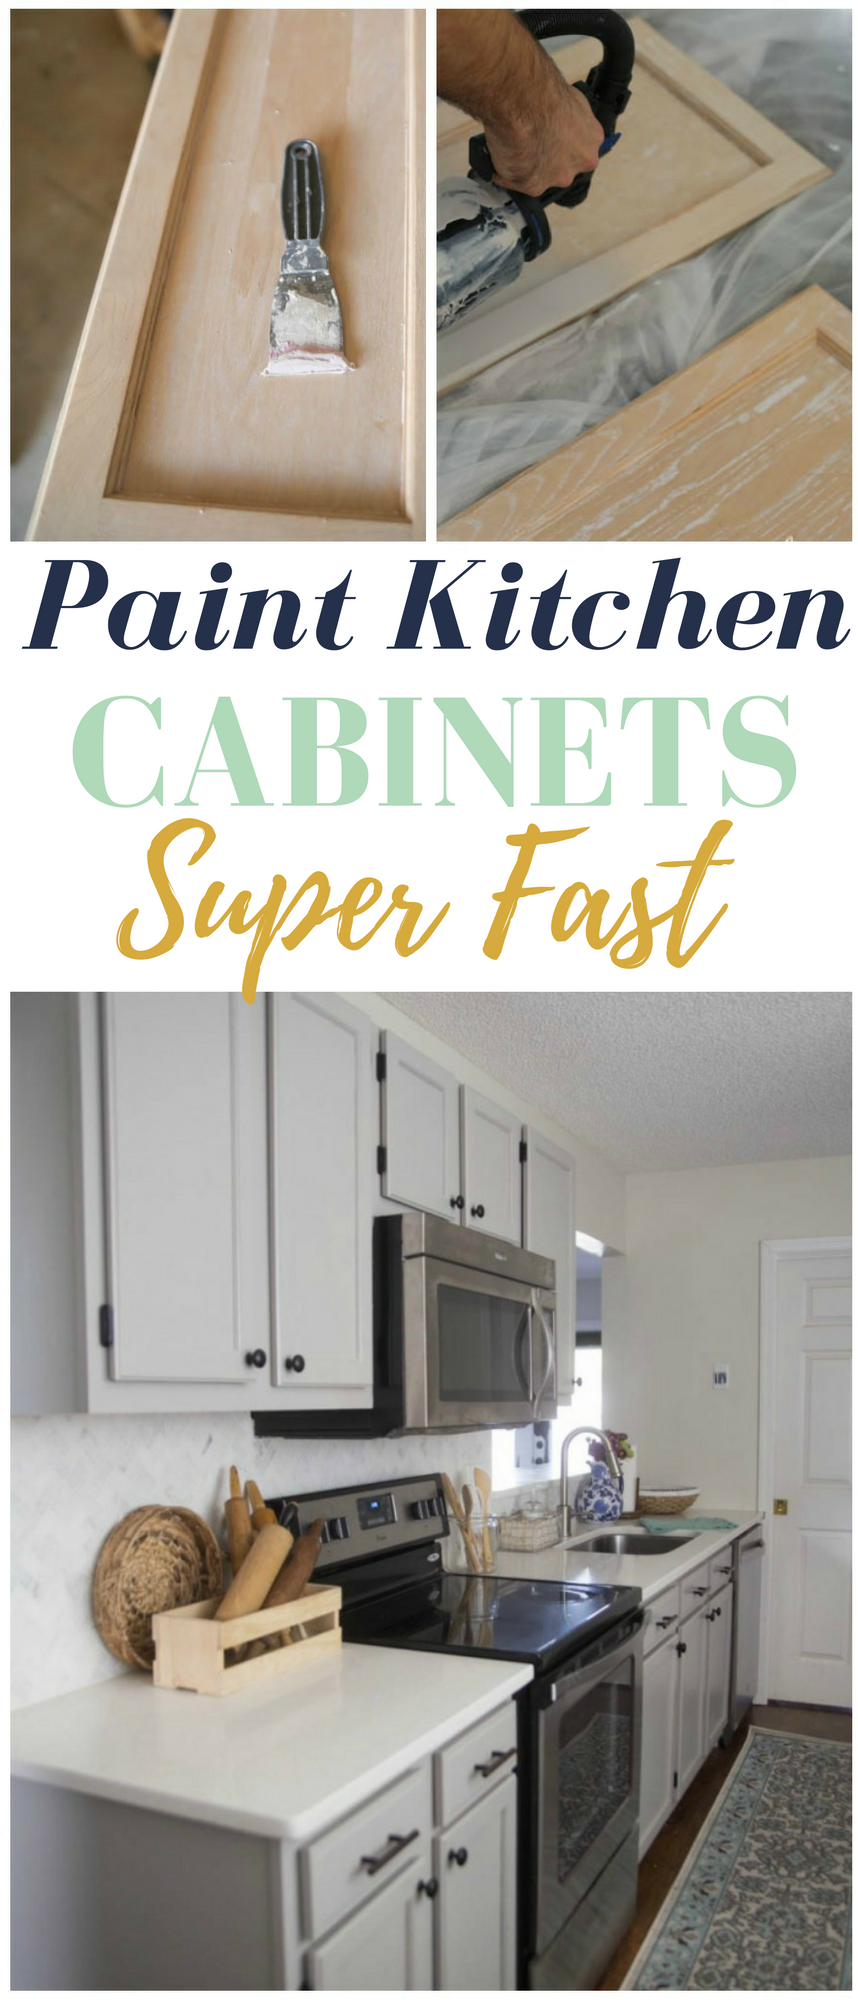 How To Paint Kitchen Cabinets Super Fast   Some Serious Time Saving Tricks  Here!